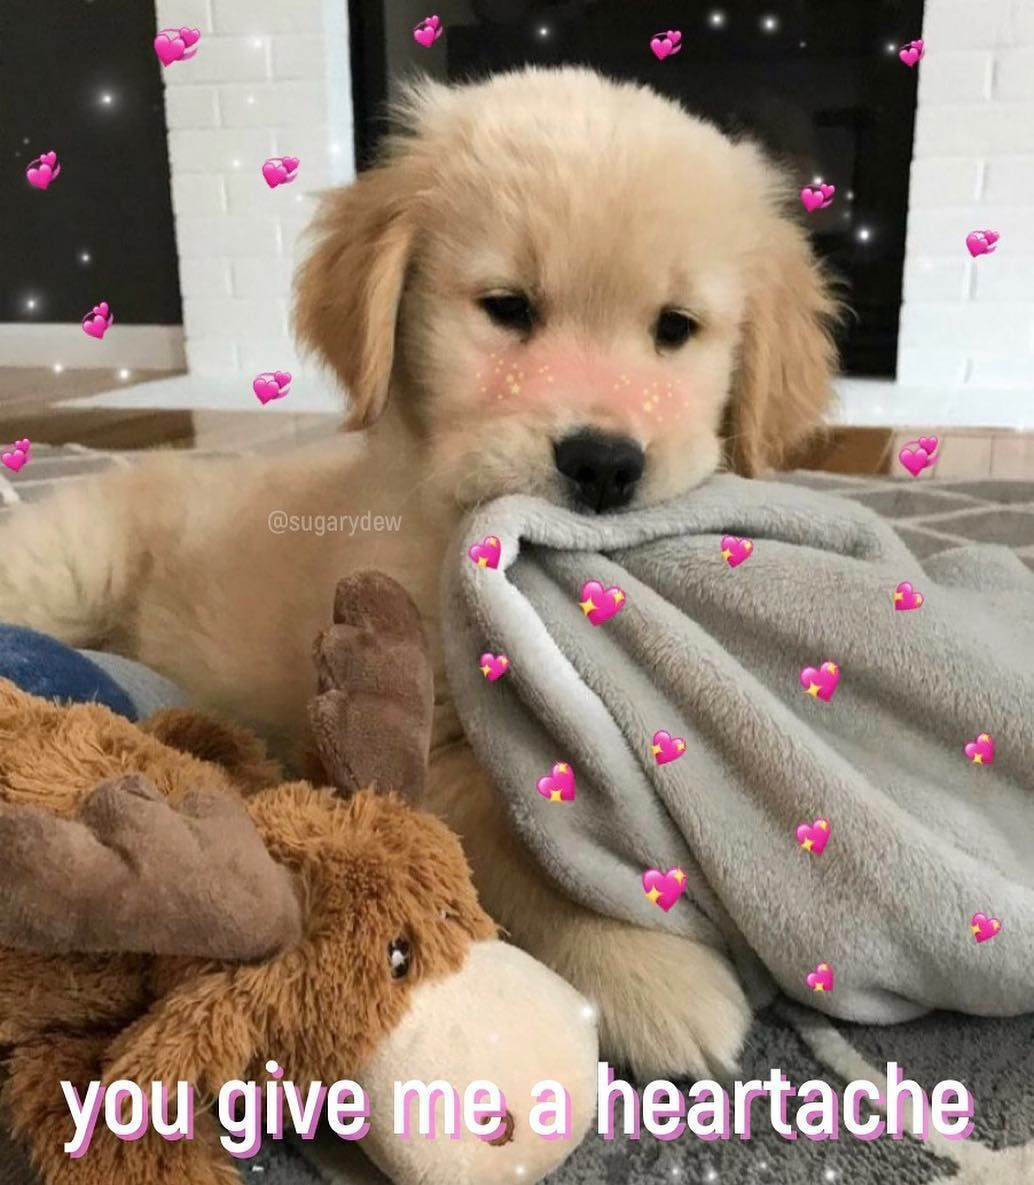 I M Tired New Wholesome Wholesomememes Cute Love Happy Selfcare Positivity Happiness Lovememes Ily Cuddling Meme Cute Memes Cute Love Memes